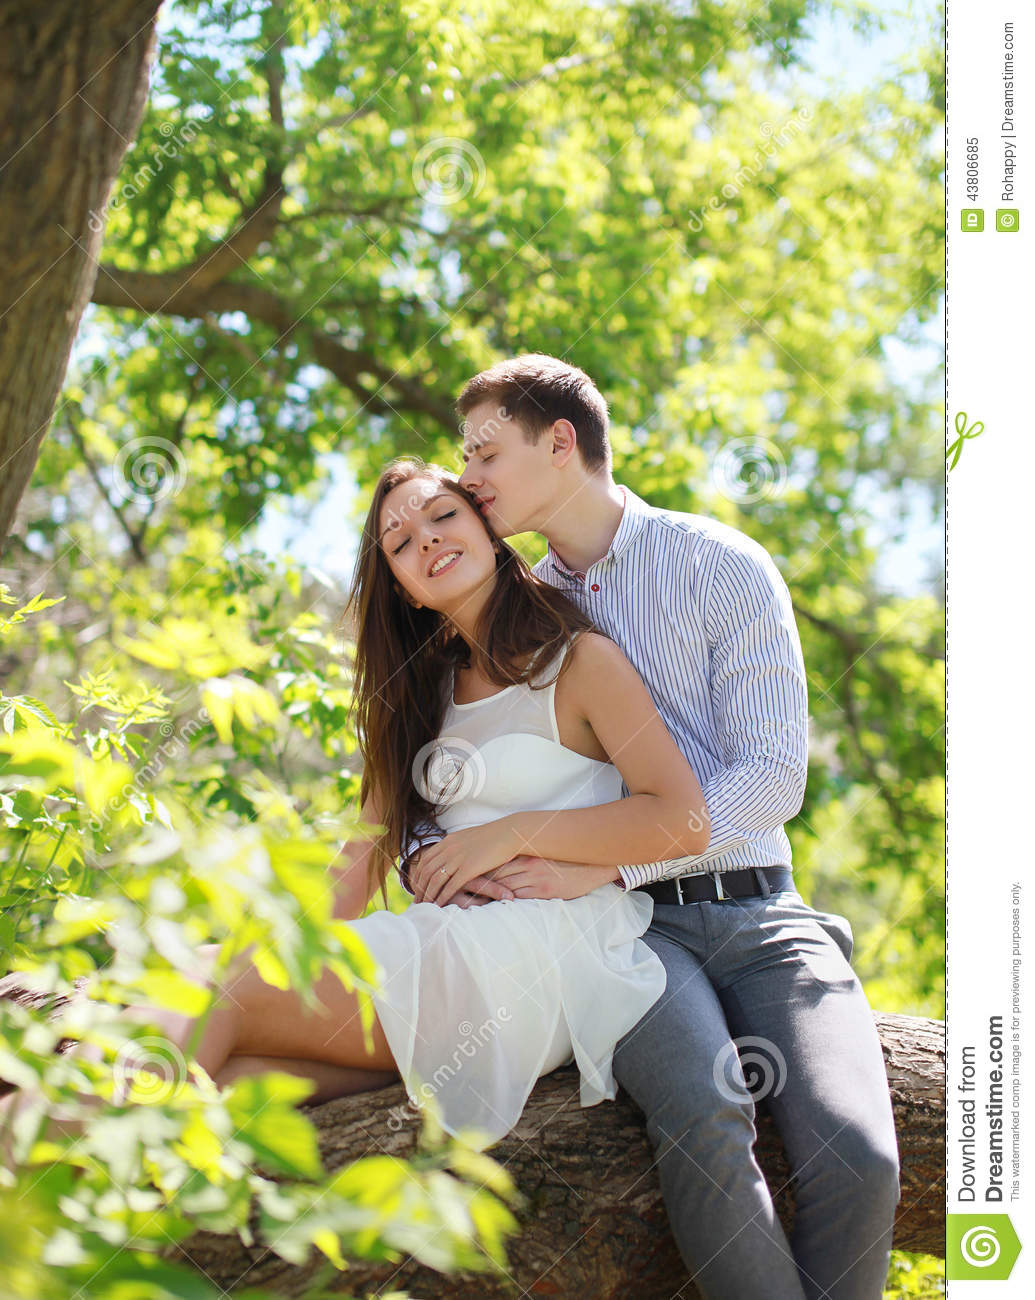 lovely young couple in summer stock image image of girl dating